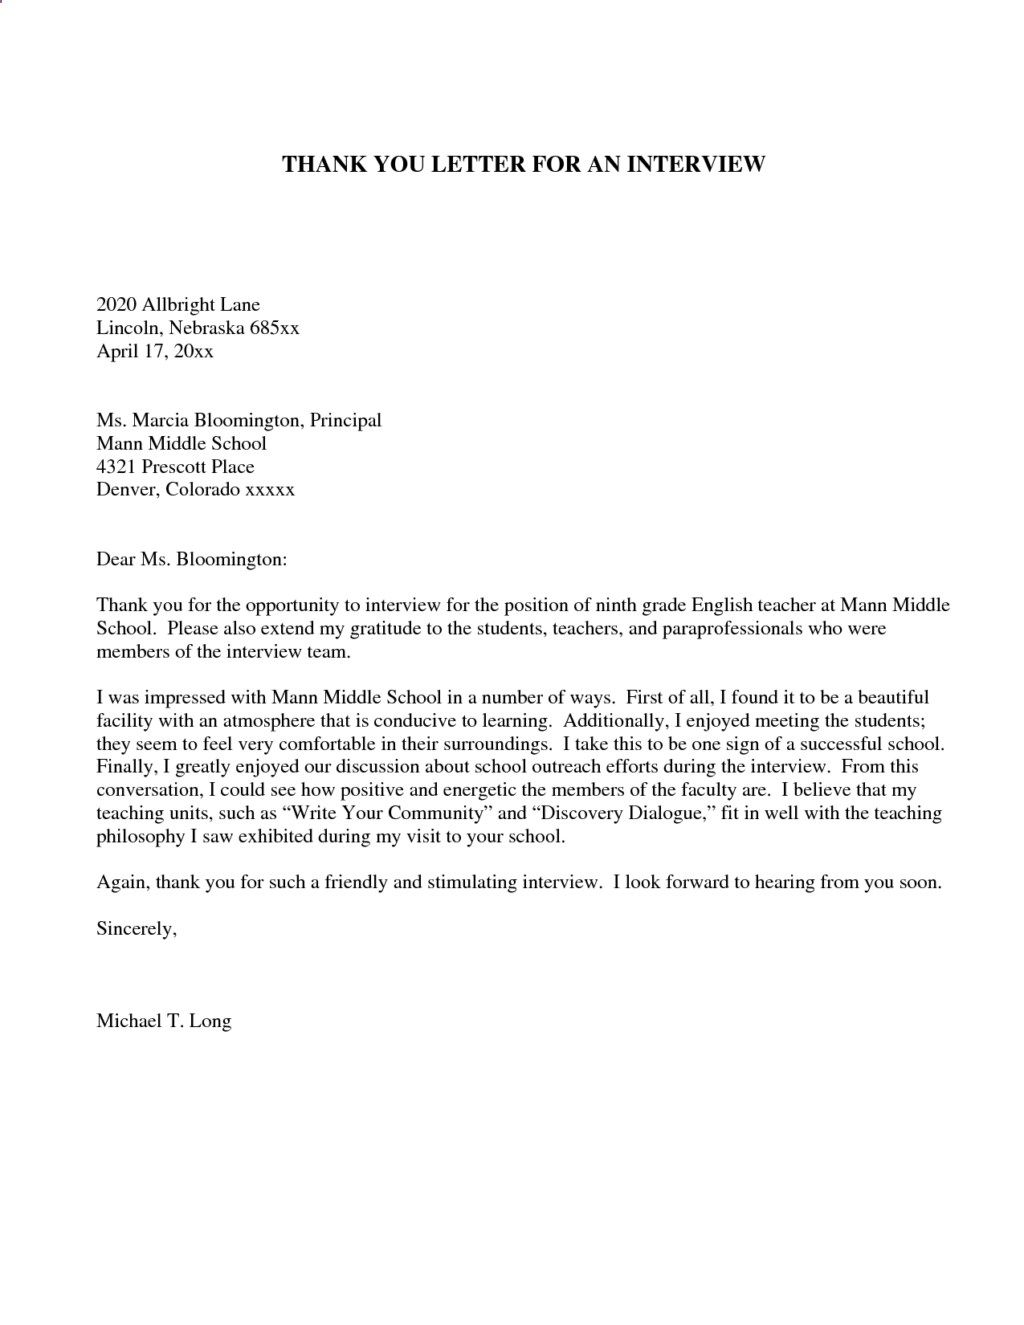 Sample Thank You Note For Teaching Interview Cover Letter